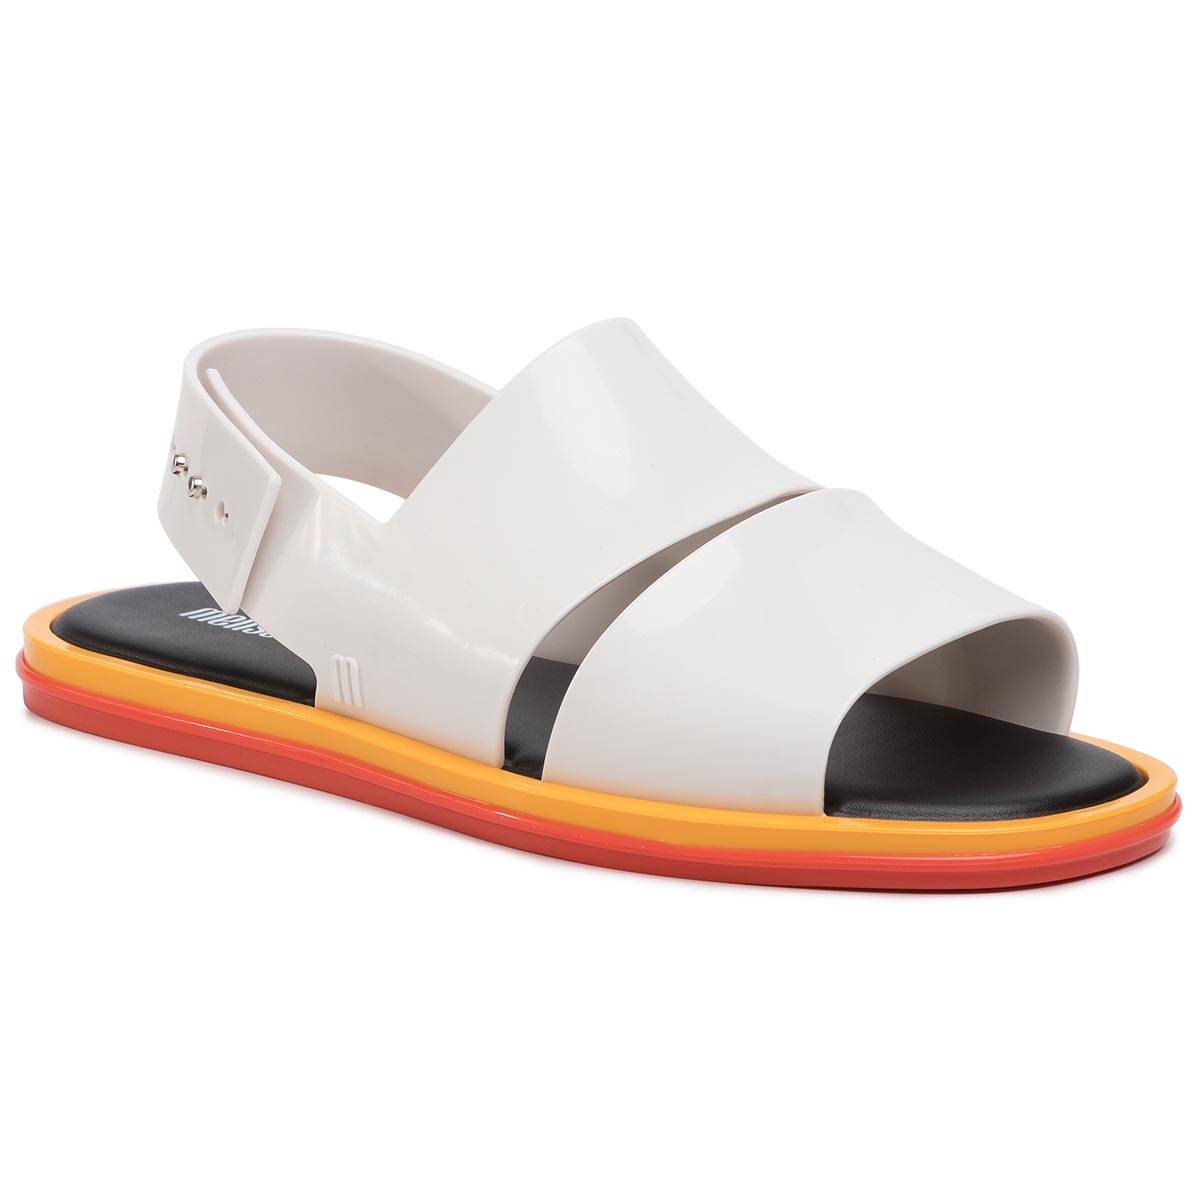 Sandale Melissa - Carbon Ad 32688 White/Black 5218 imagine epantofi.ro 2021